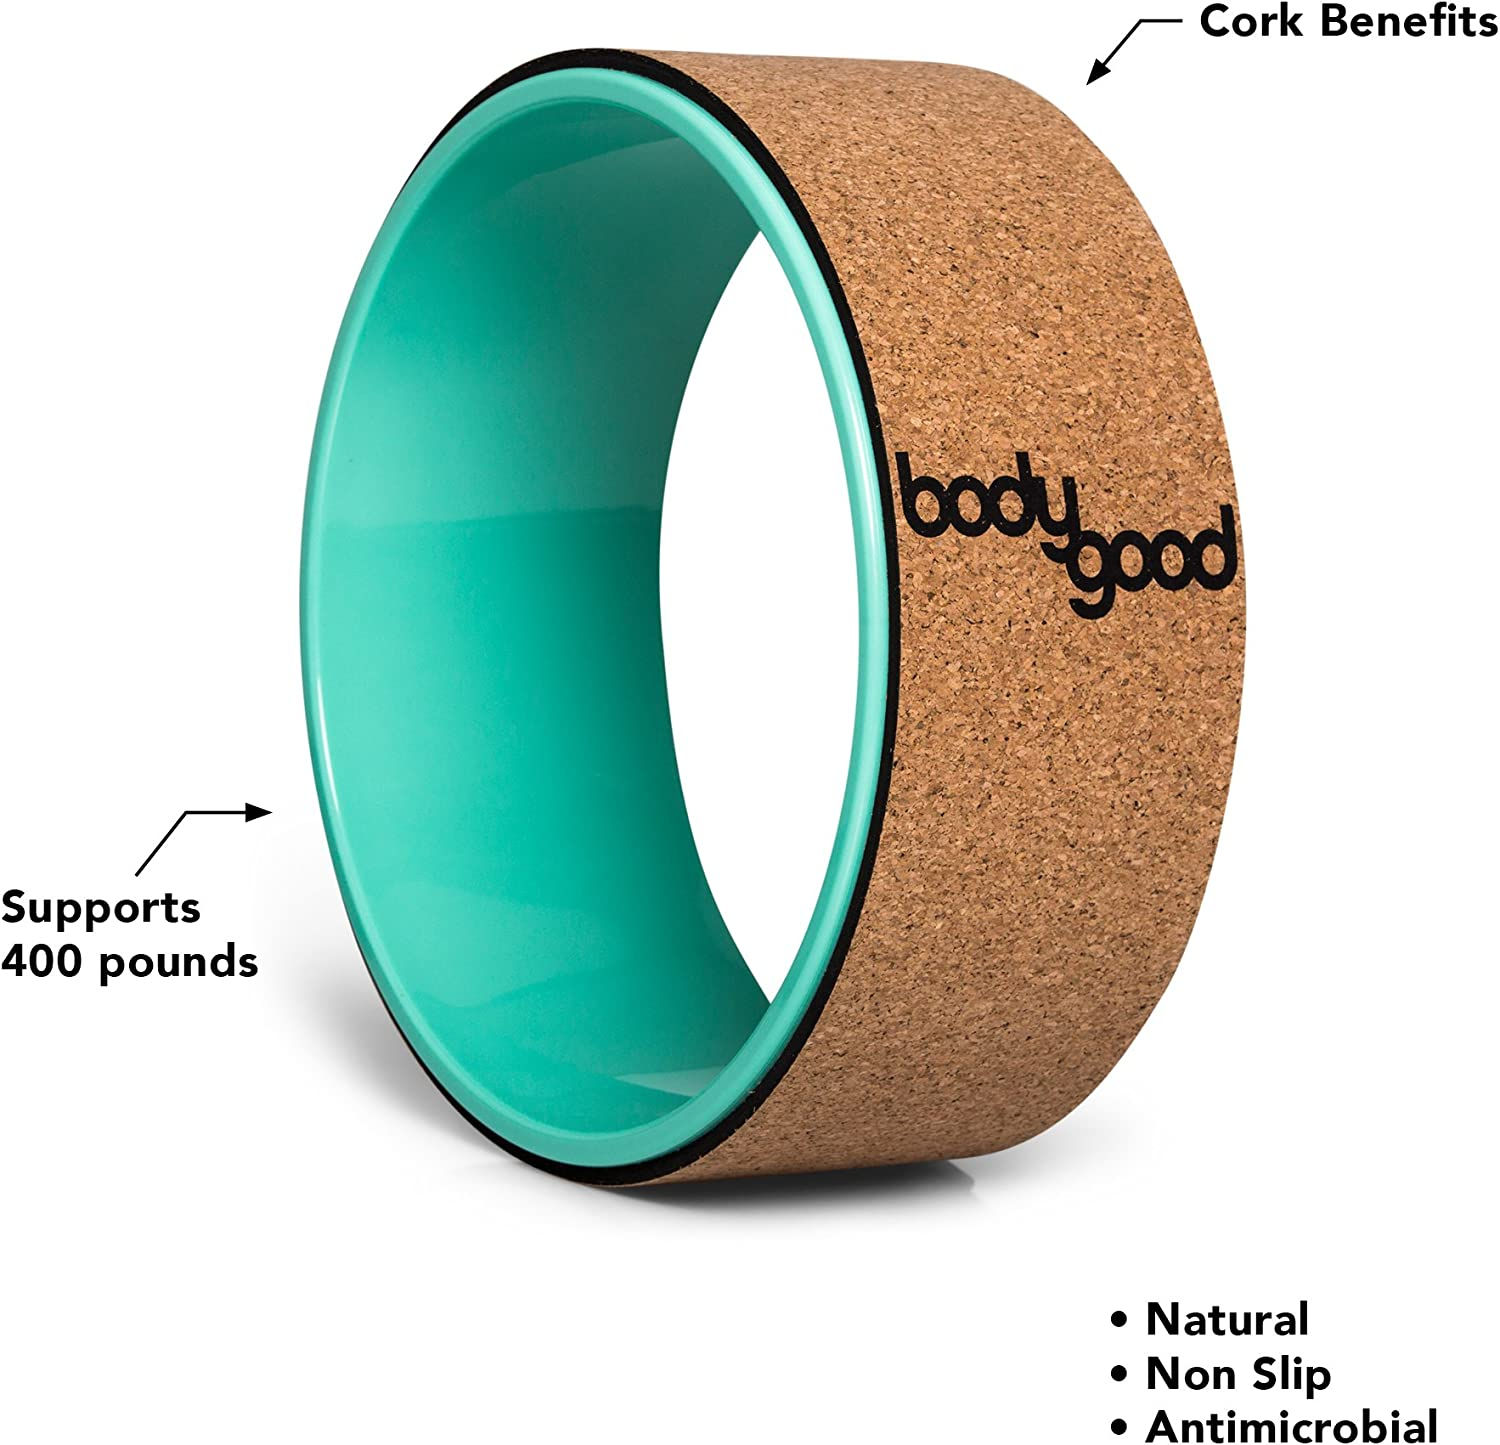 BodyGood Cork Yoga Wheel. Pro Grade, 13-inch Dharma Yoga Prop Supports up to 500 lbs. Improve Back Bends, Deepen Practice or Release Tight Muscles